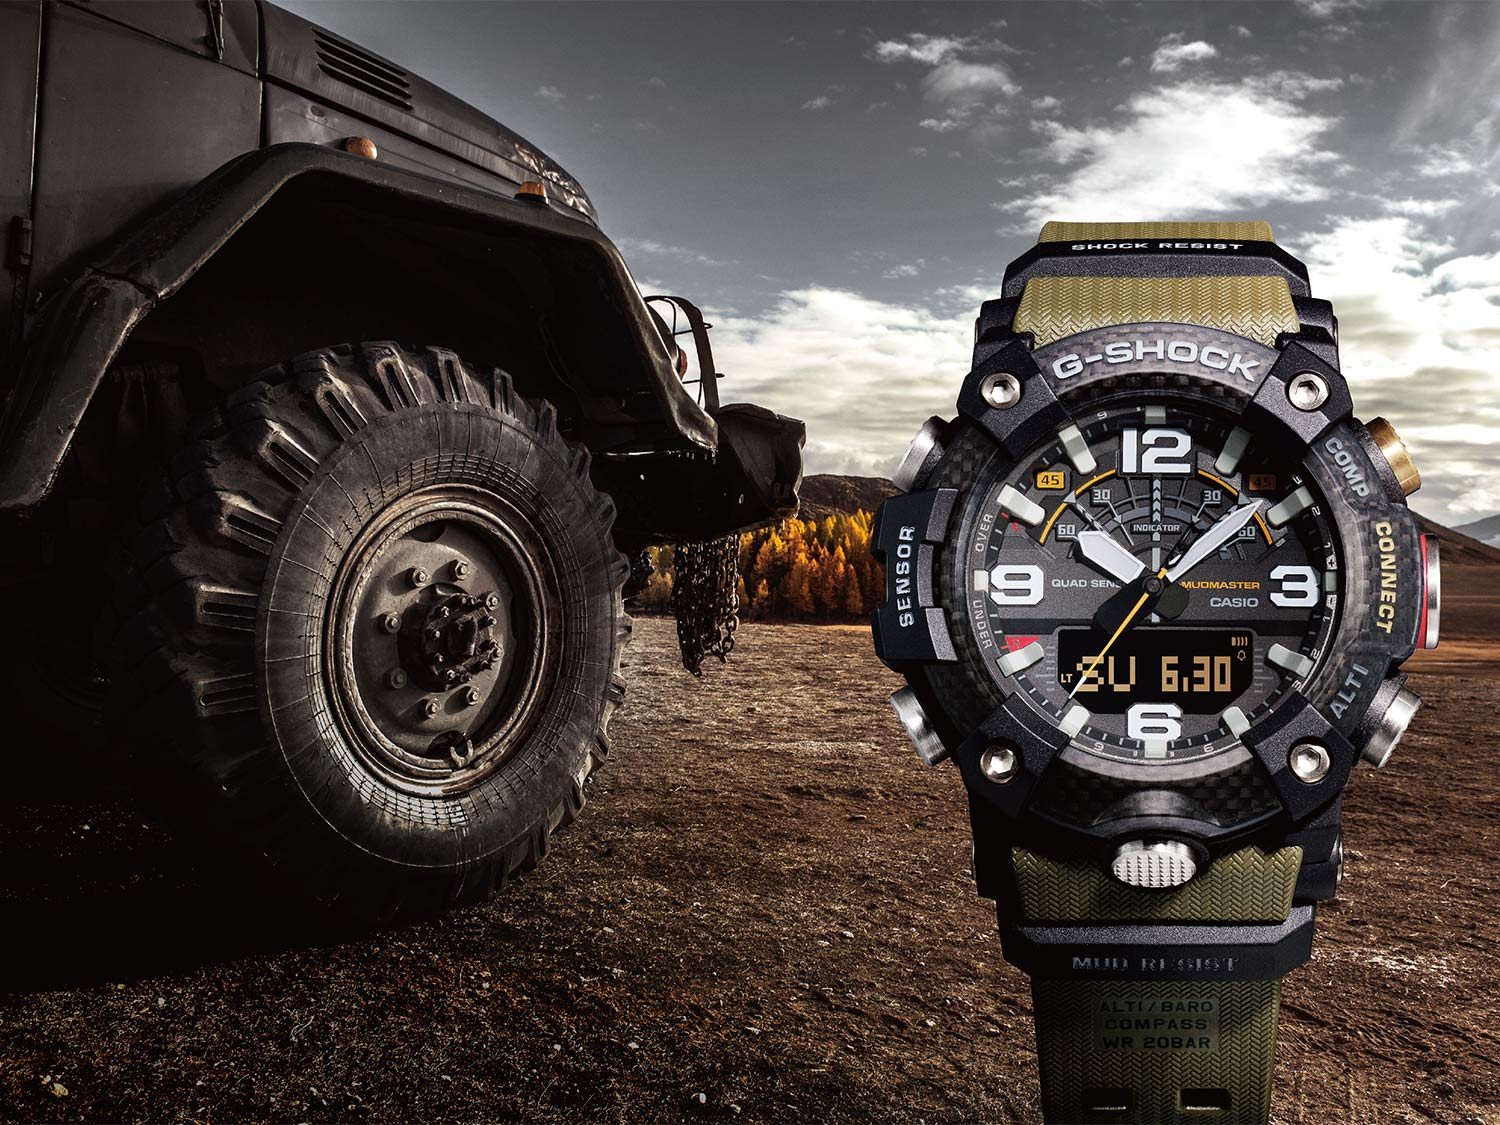 The G-SHOCK Mudmaster GG-B100 Watch is Perfect for Hunters and Anglers